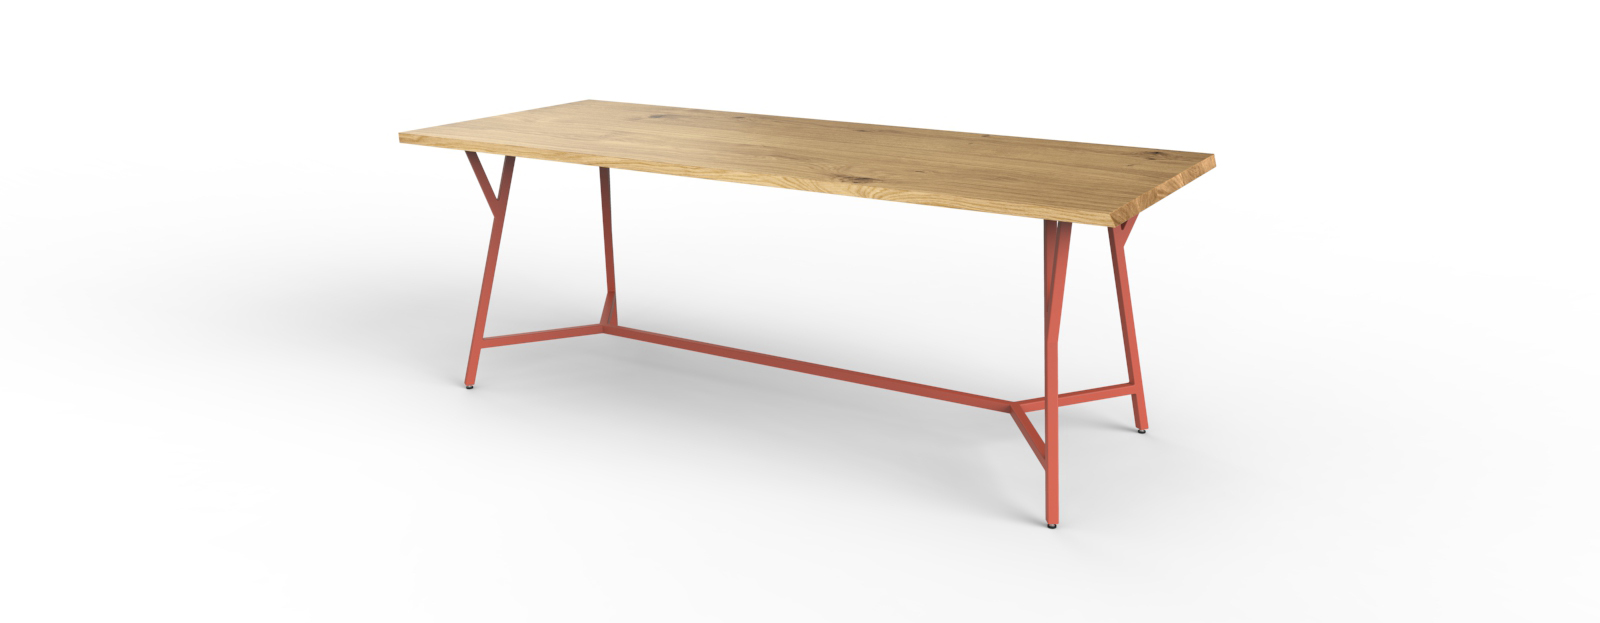 YV table costum 4